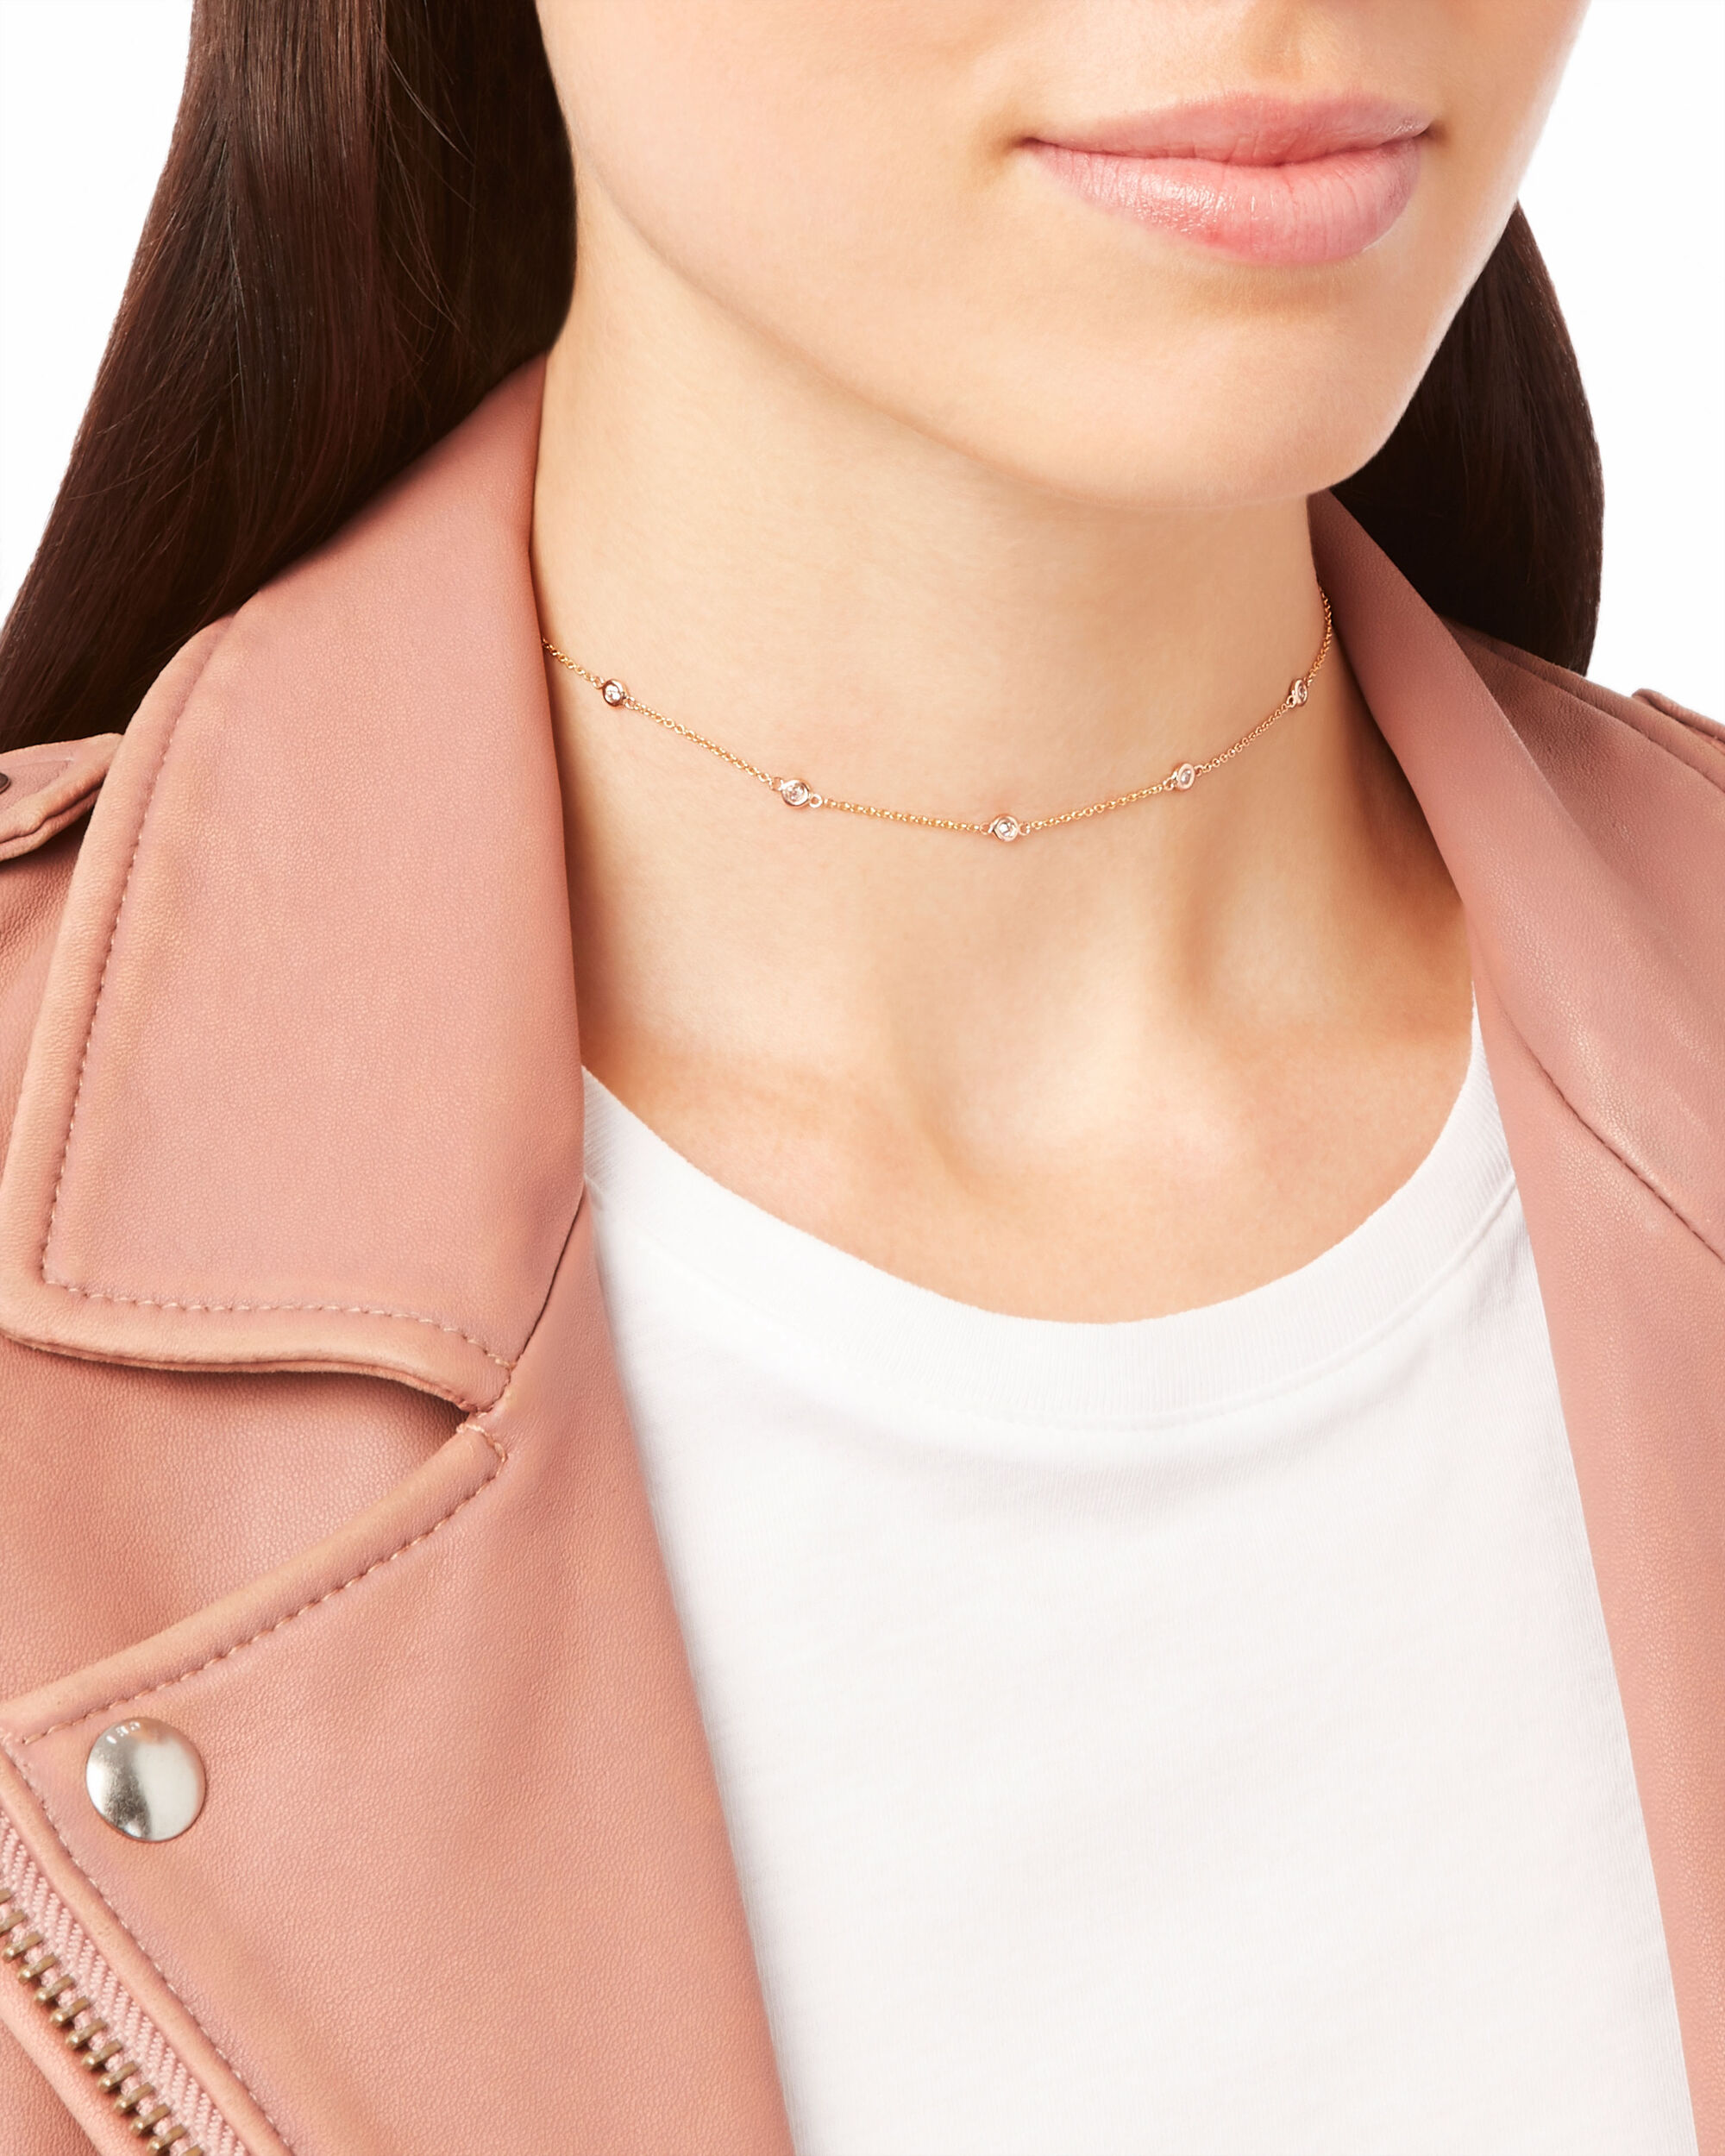 5 Diamond Spaced Out Choker, METALLIC, hi-res